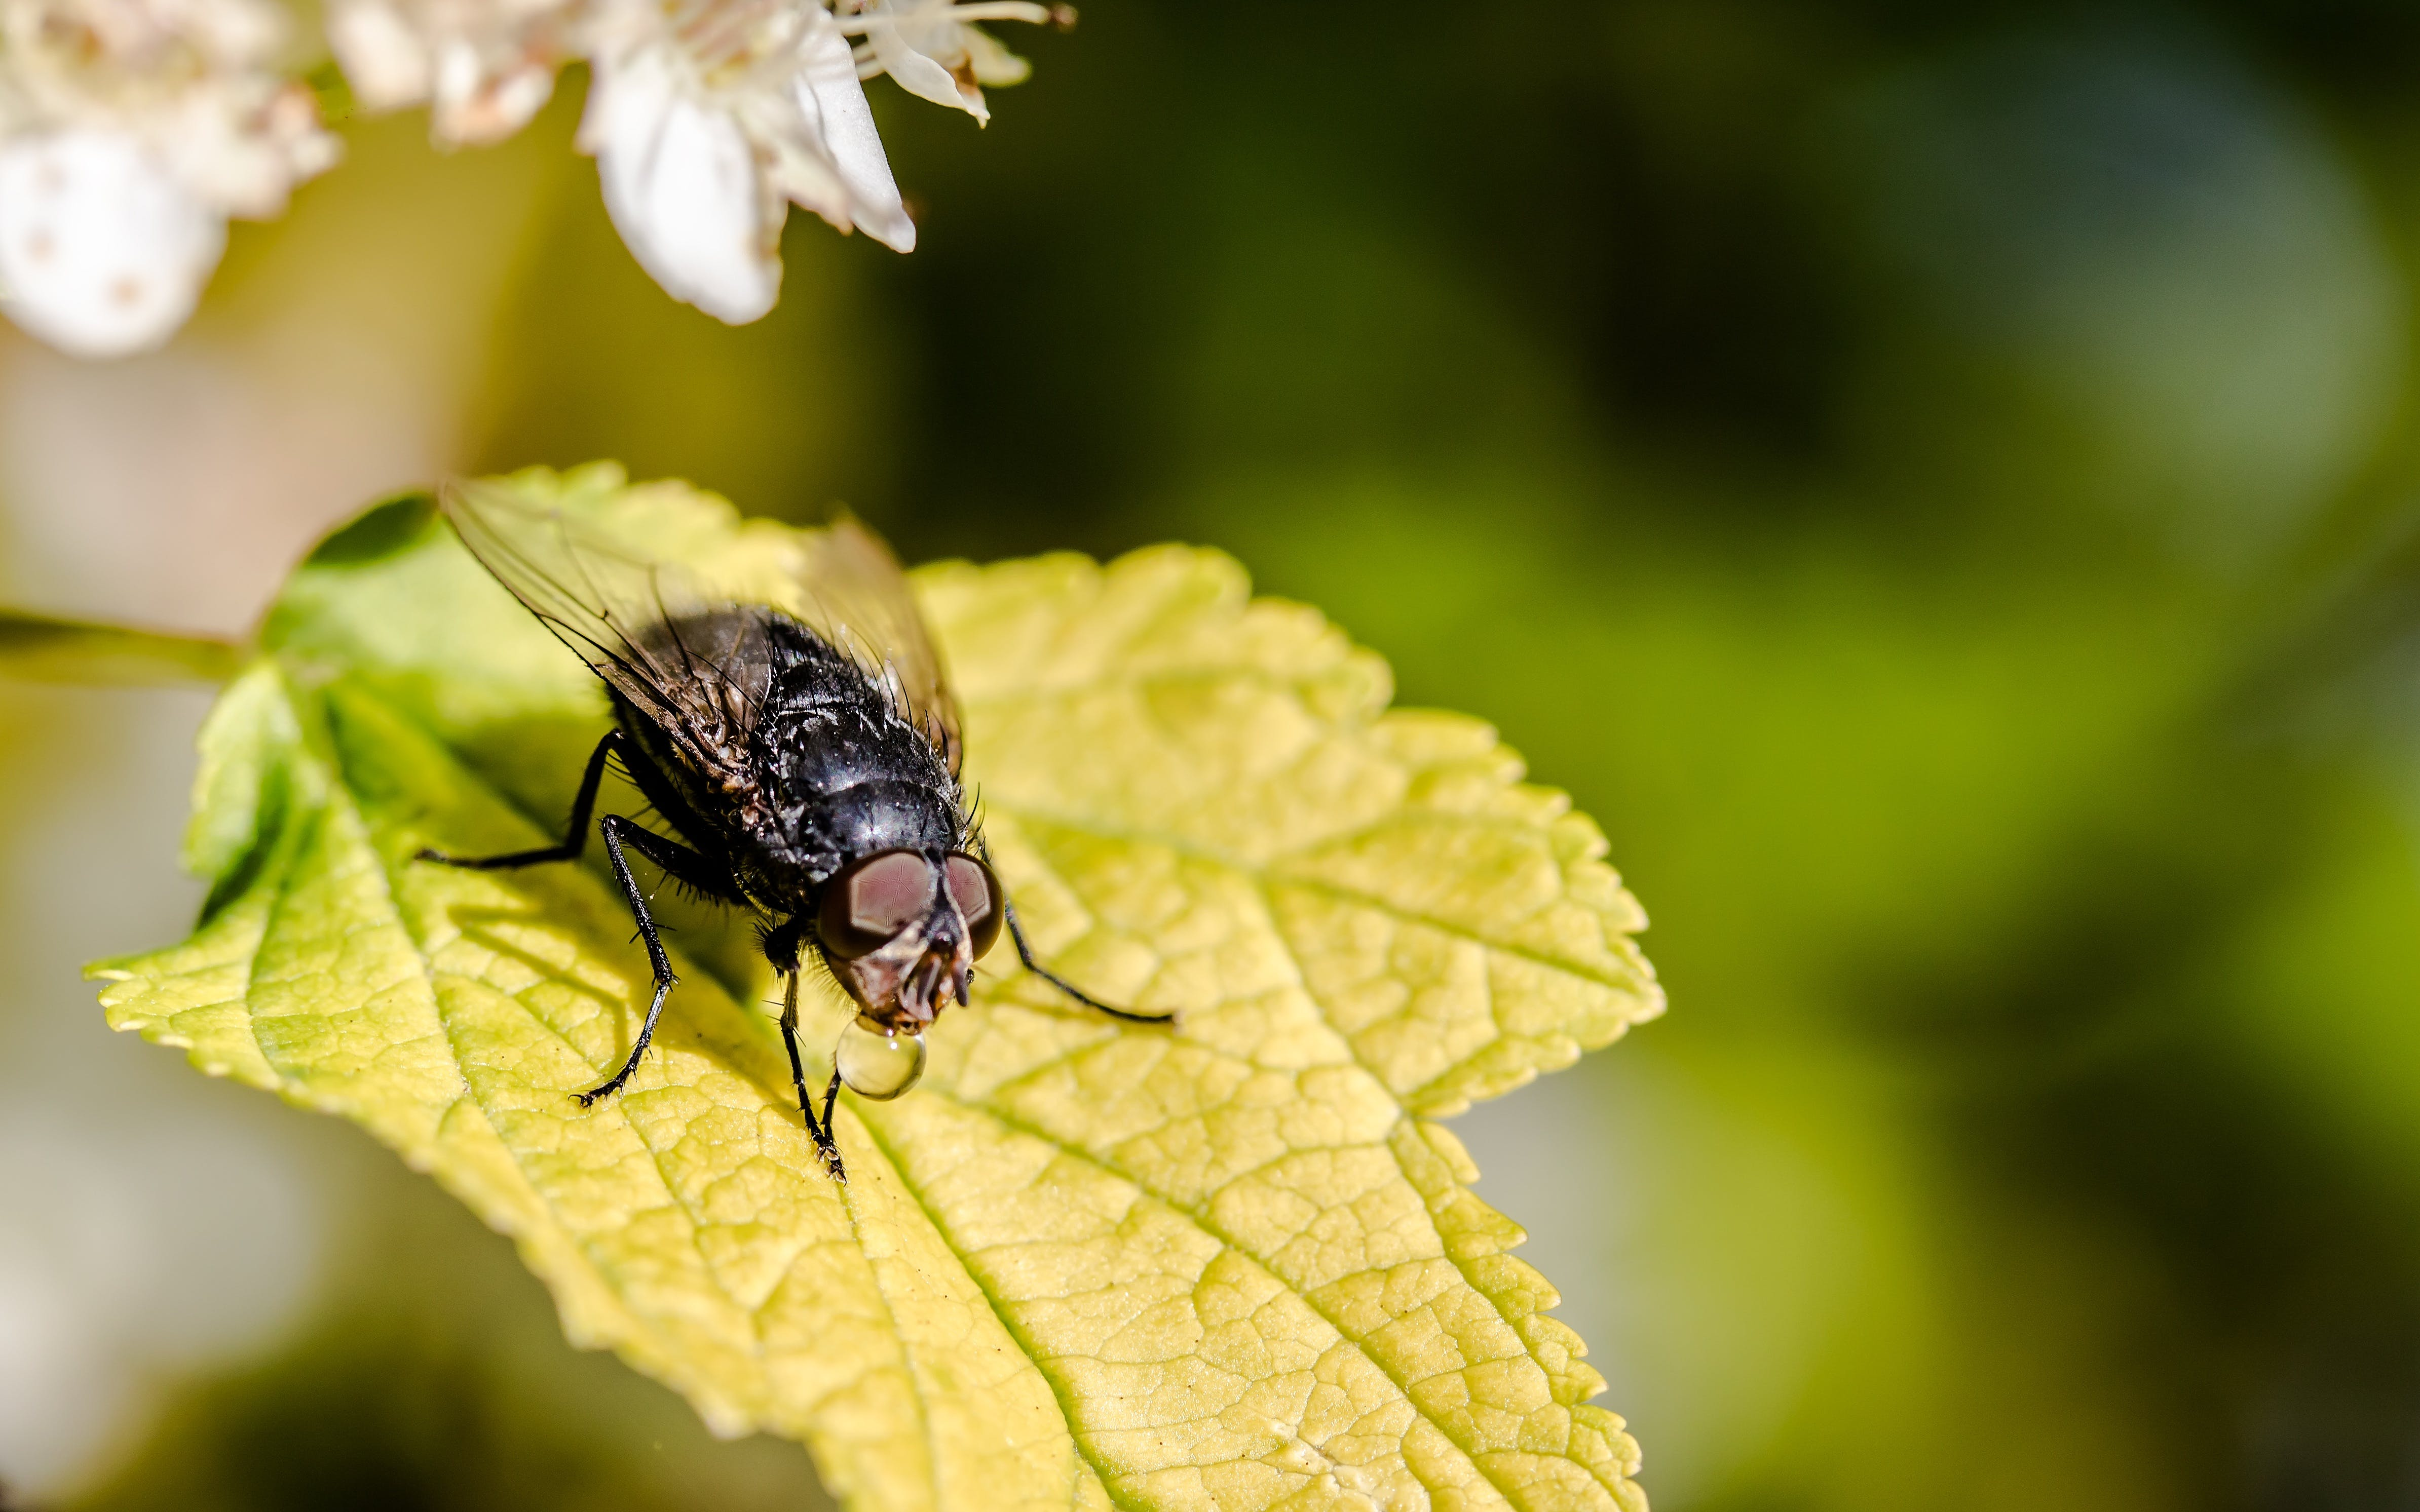 Macro Photography of Housefly on Maple Leaf